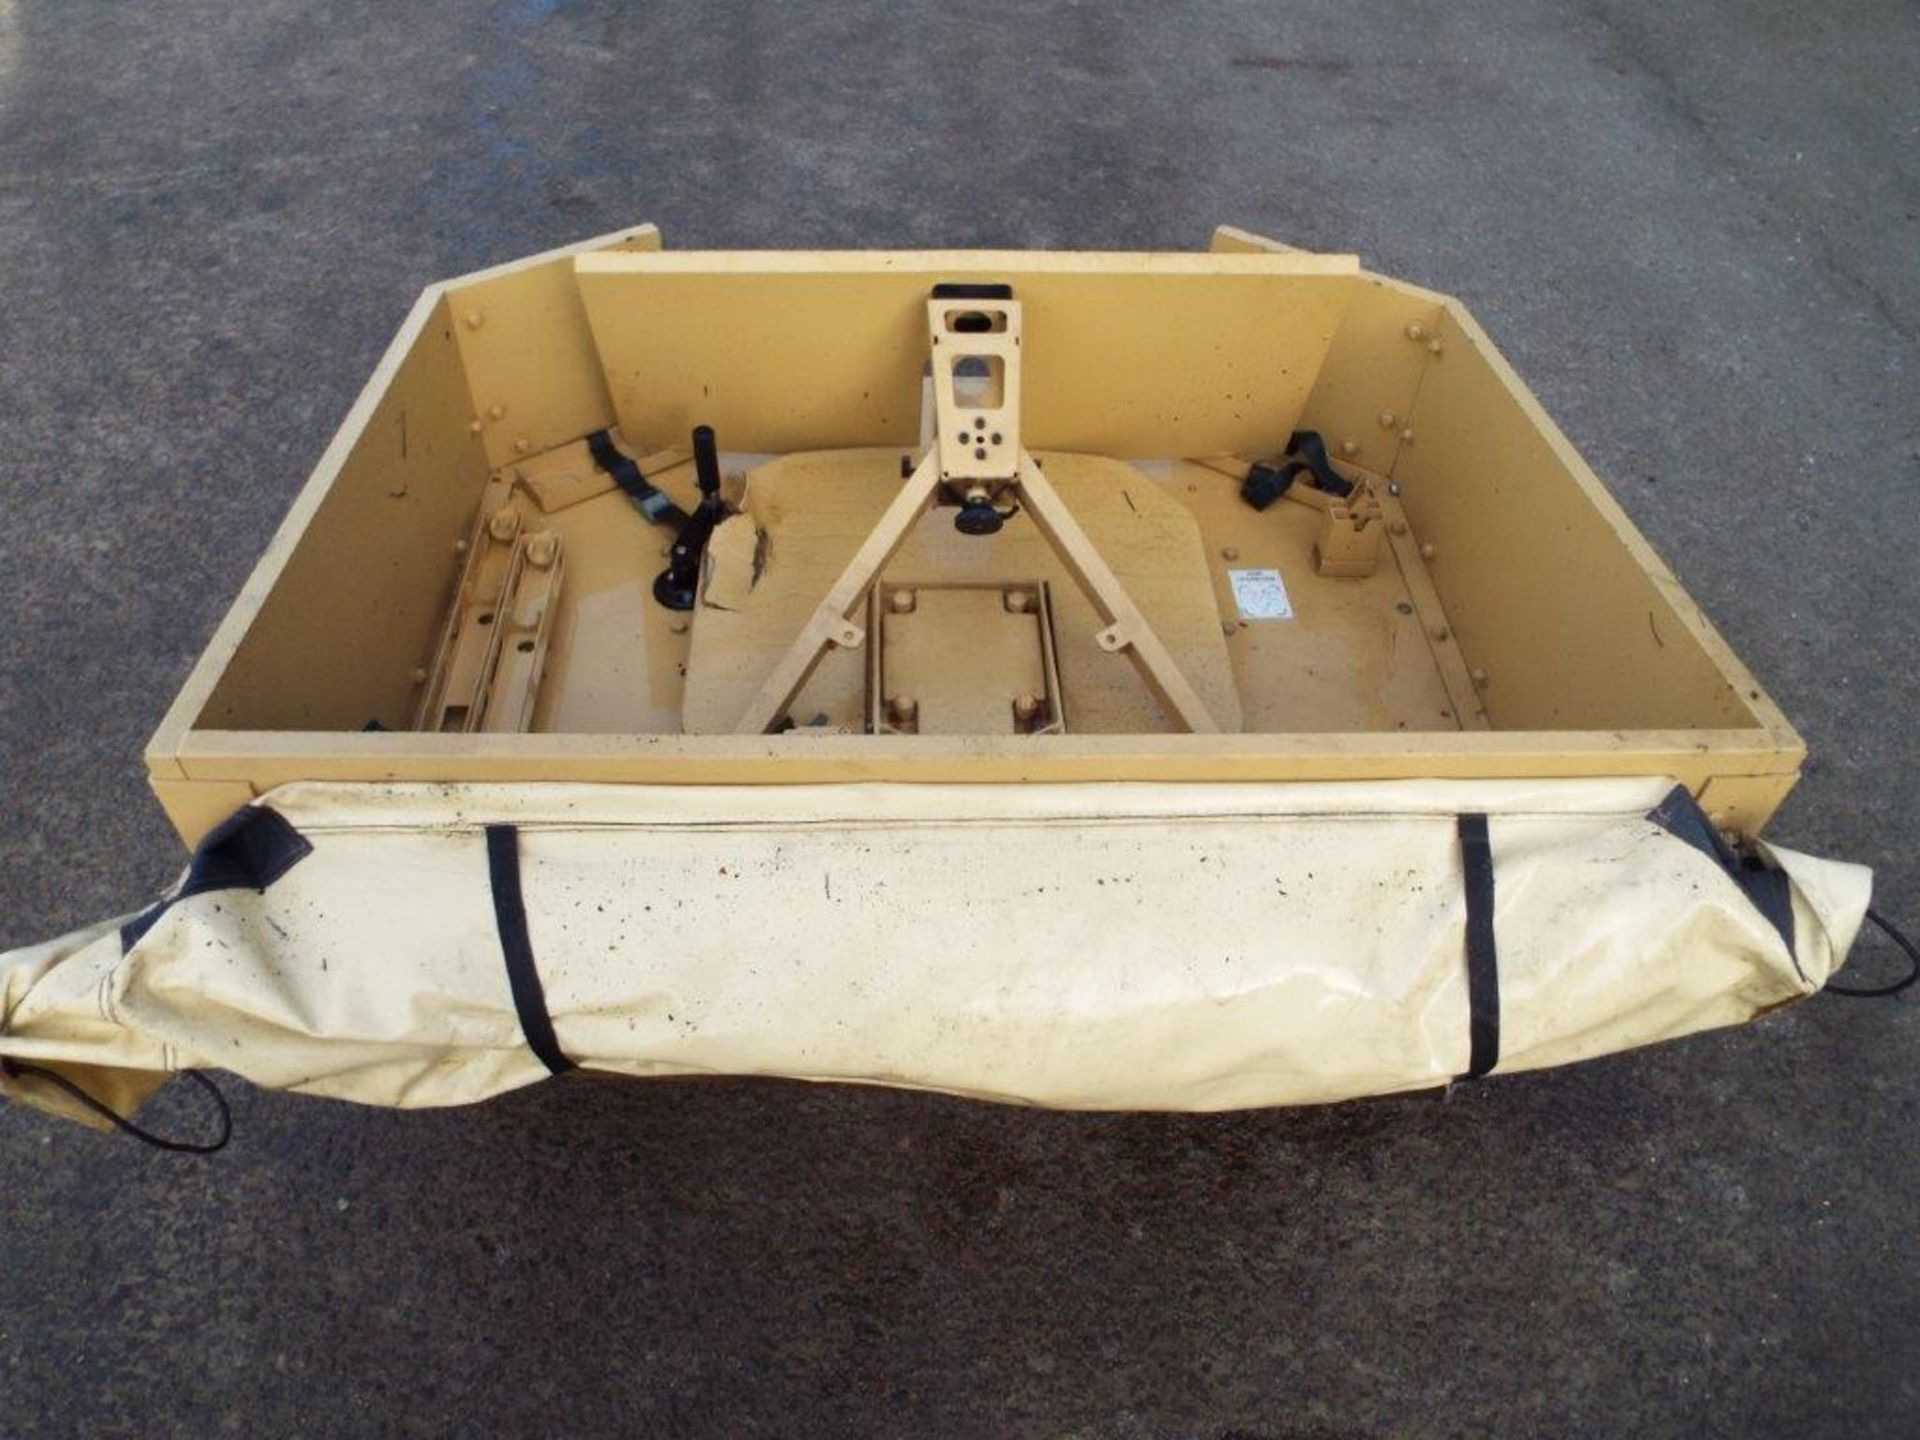 Lote 22359 - Armoured Vehicle Weapon Turret Assembly with Cover